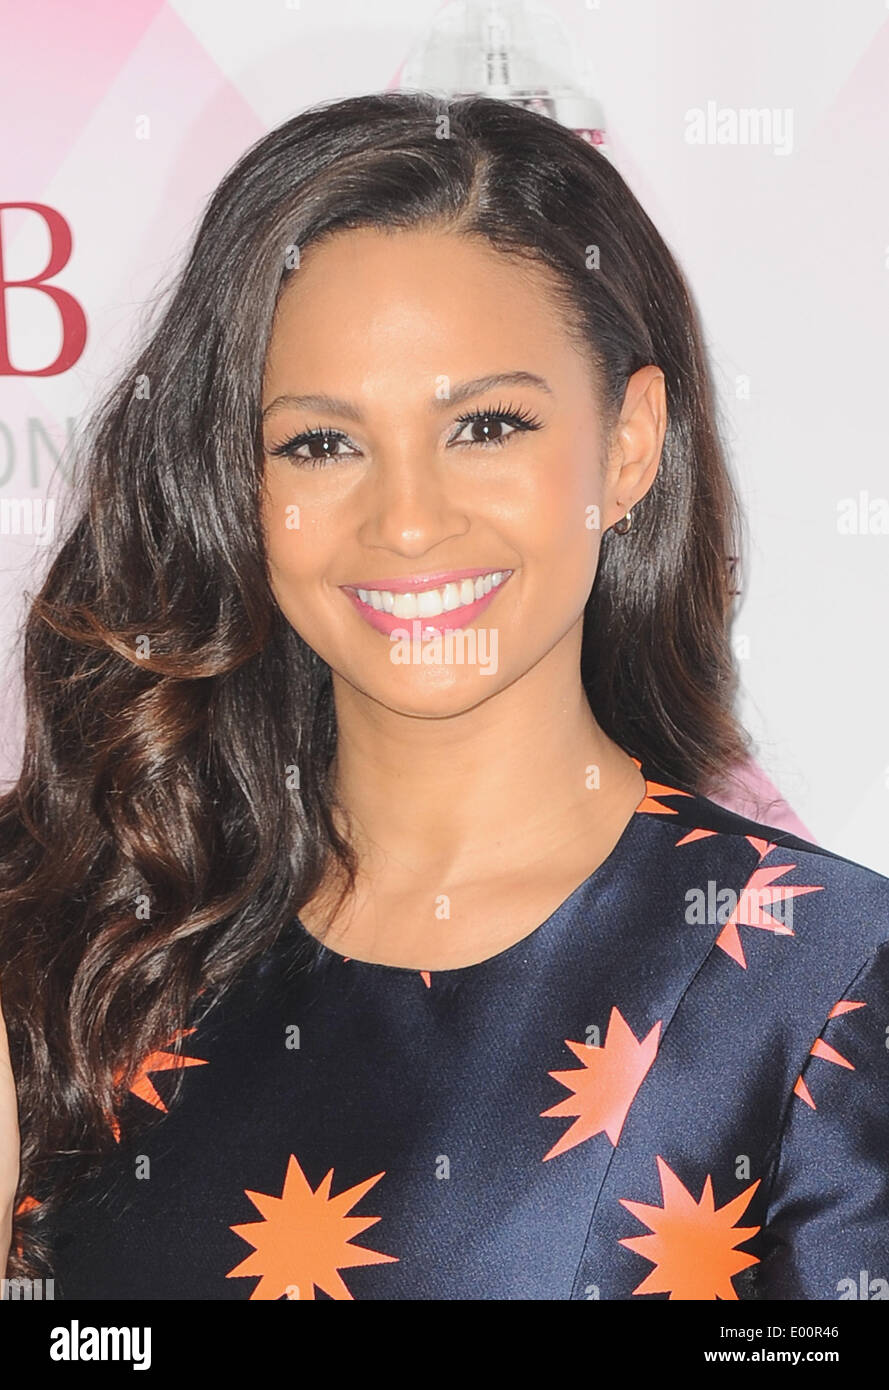 Hacked Alesha Dixon nude photos 2019